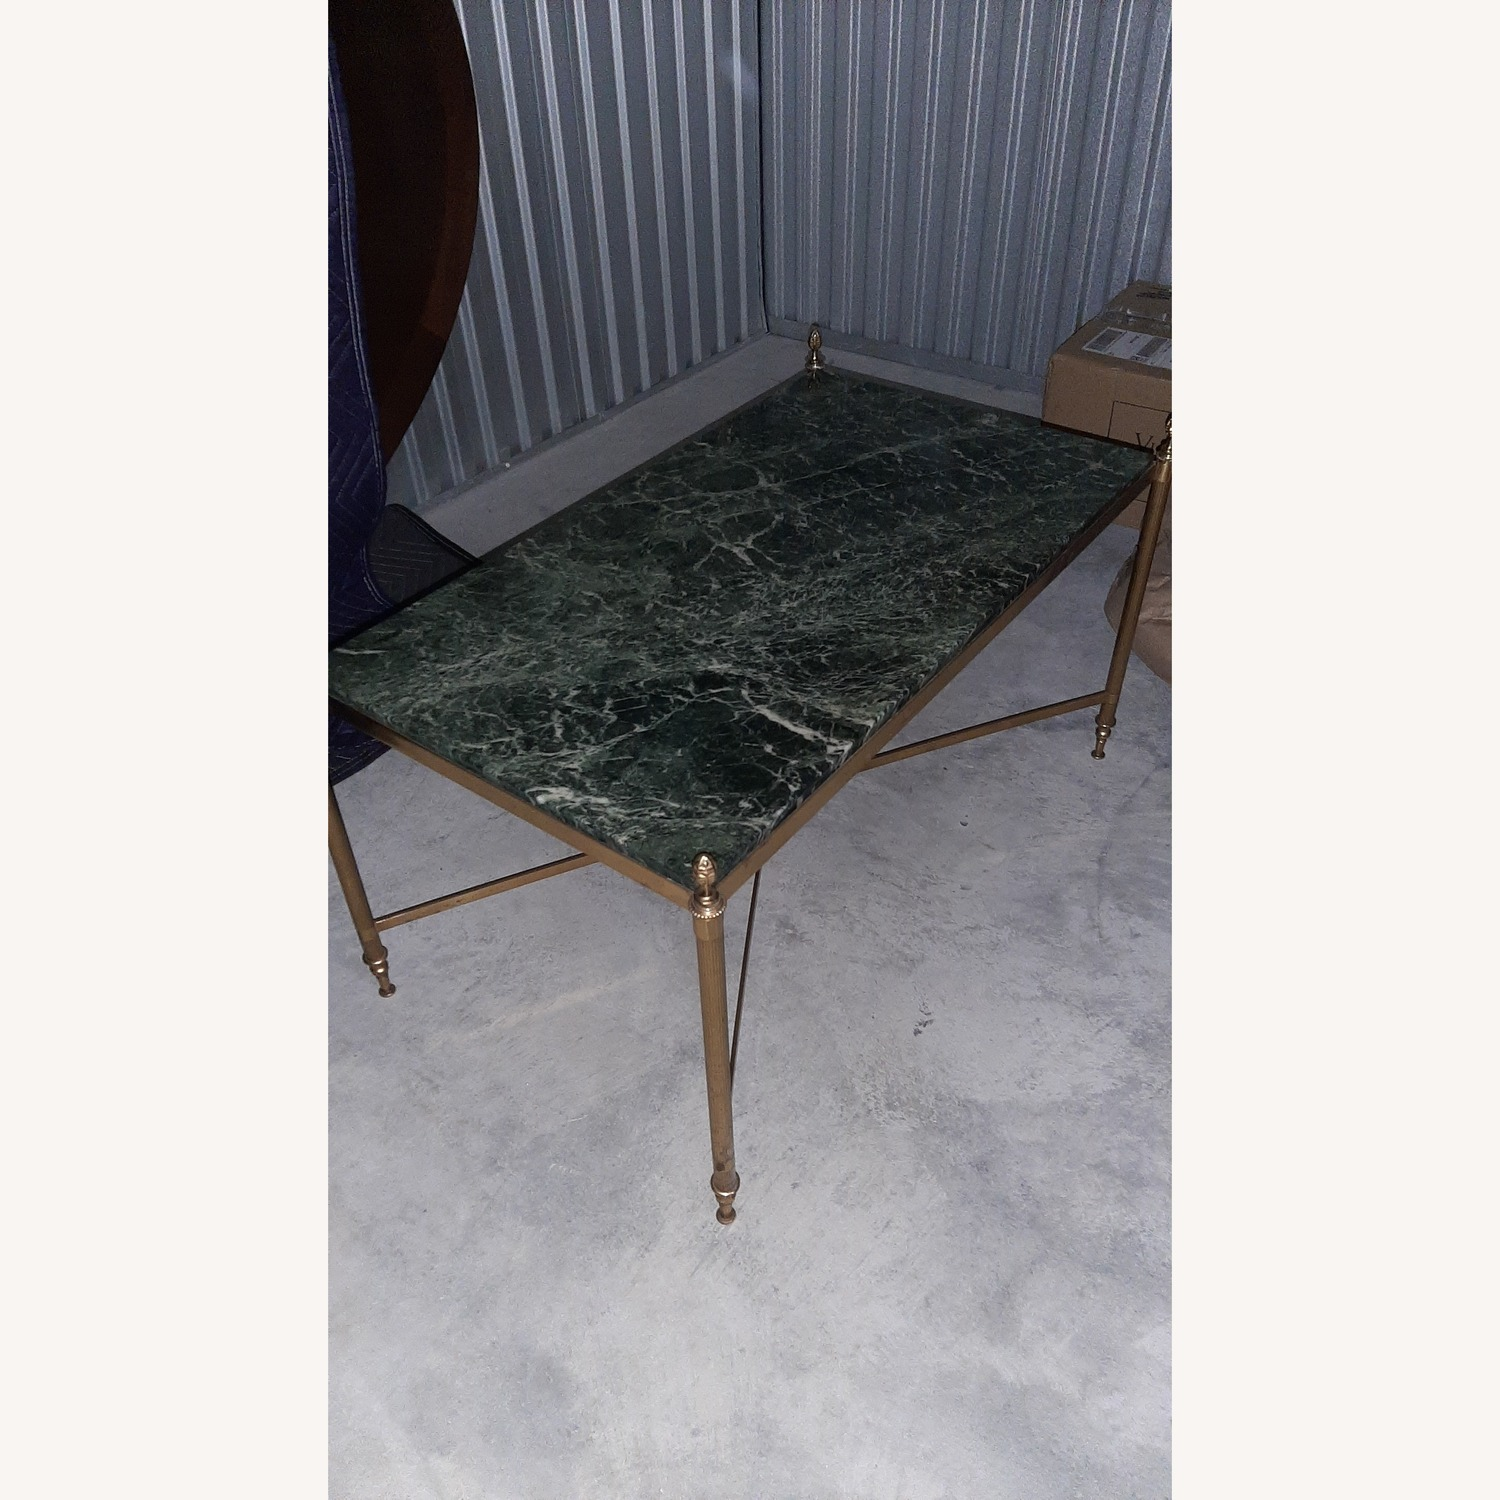 1940's Vintage French Maison Jansen Coffee Table - image-1